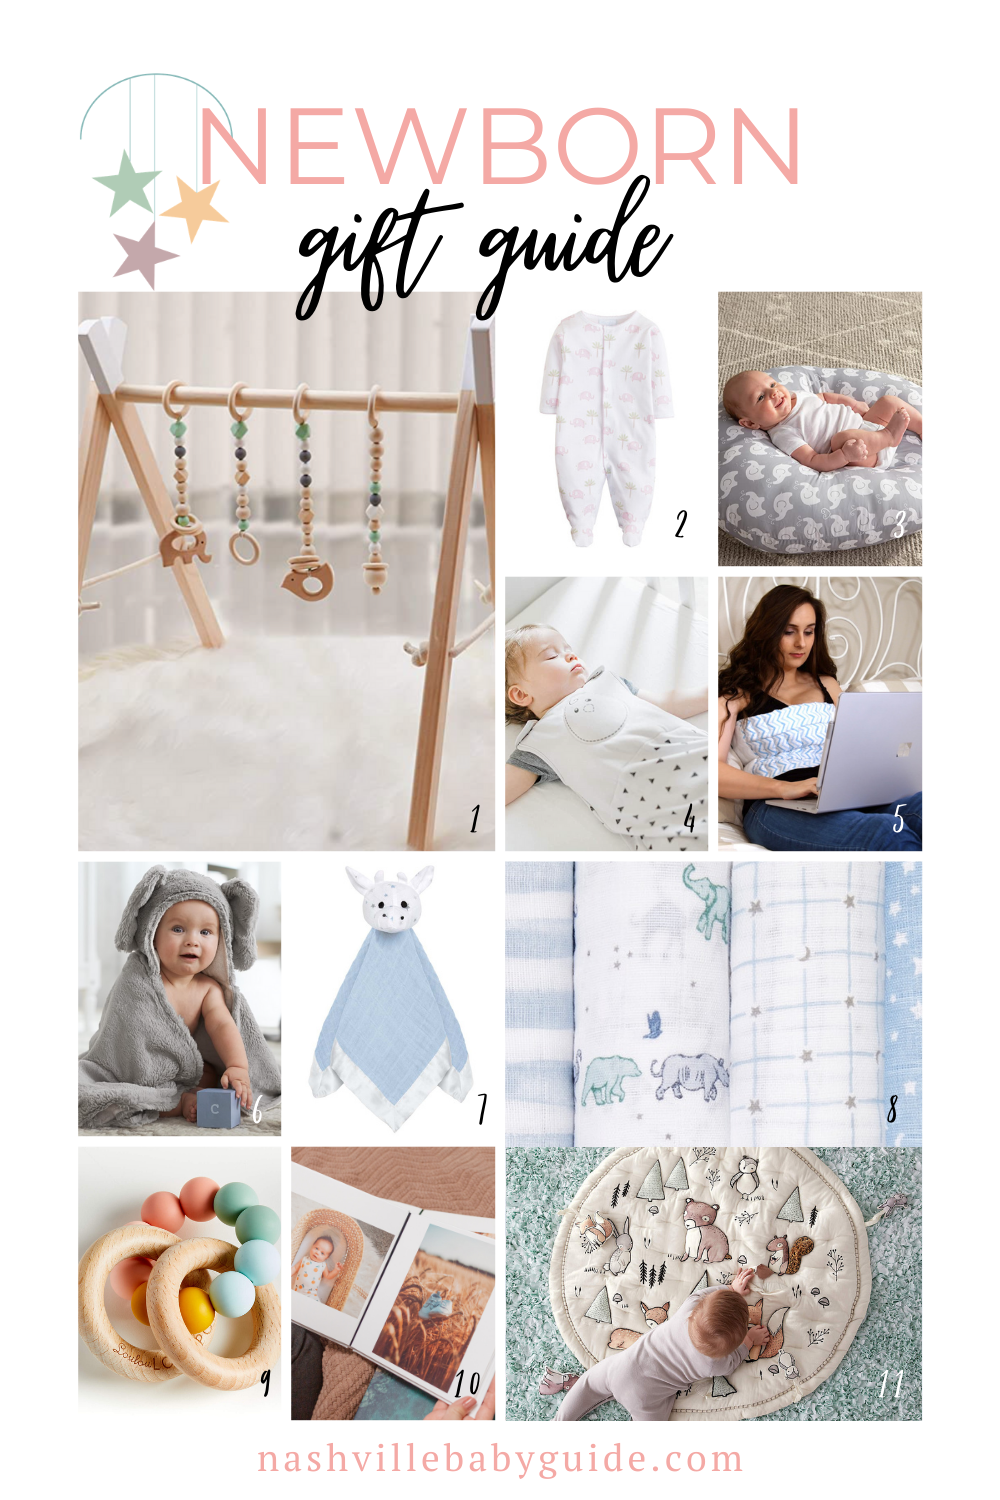 Newborn Gift Guide for the Holidays featured on Nashville Baby Guide